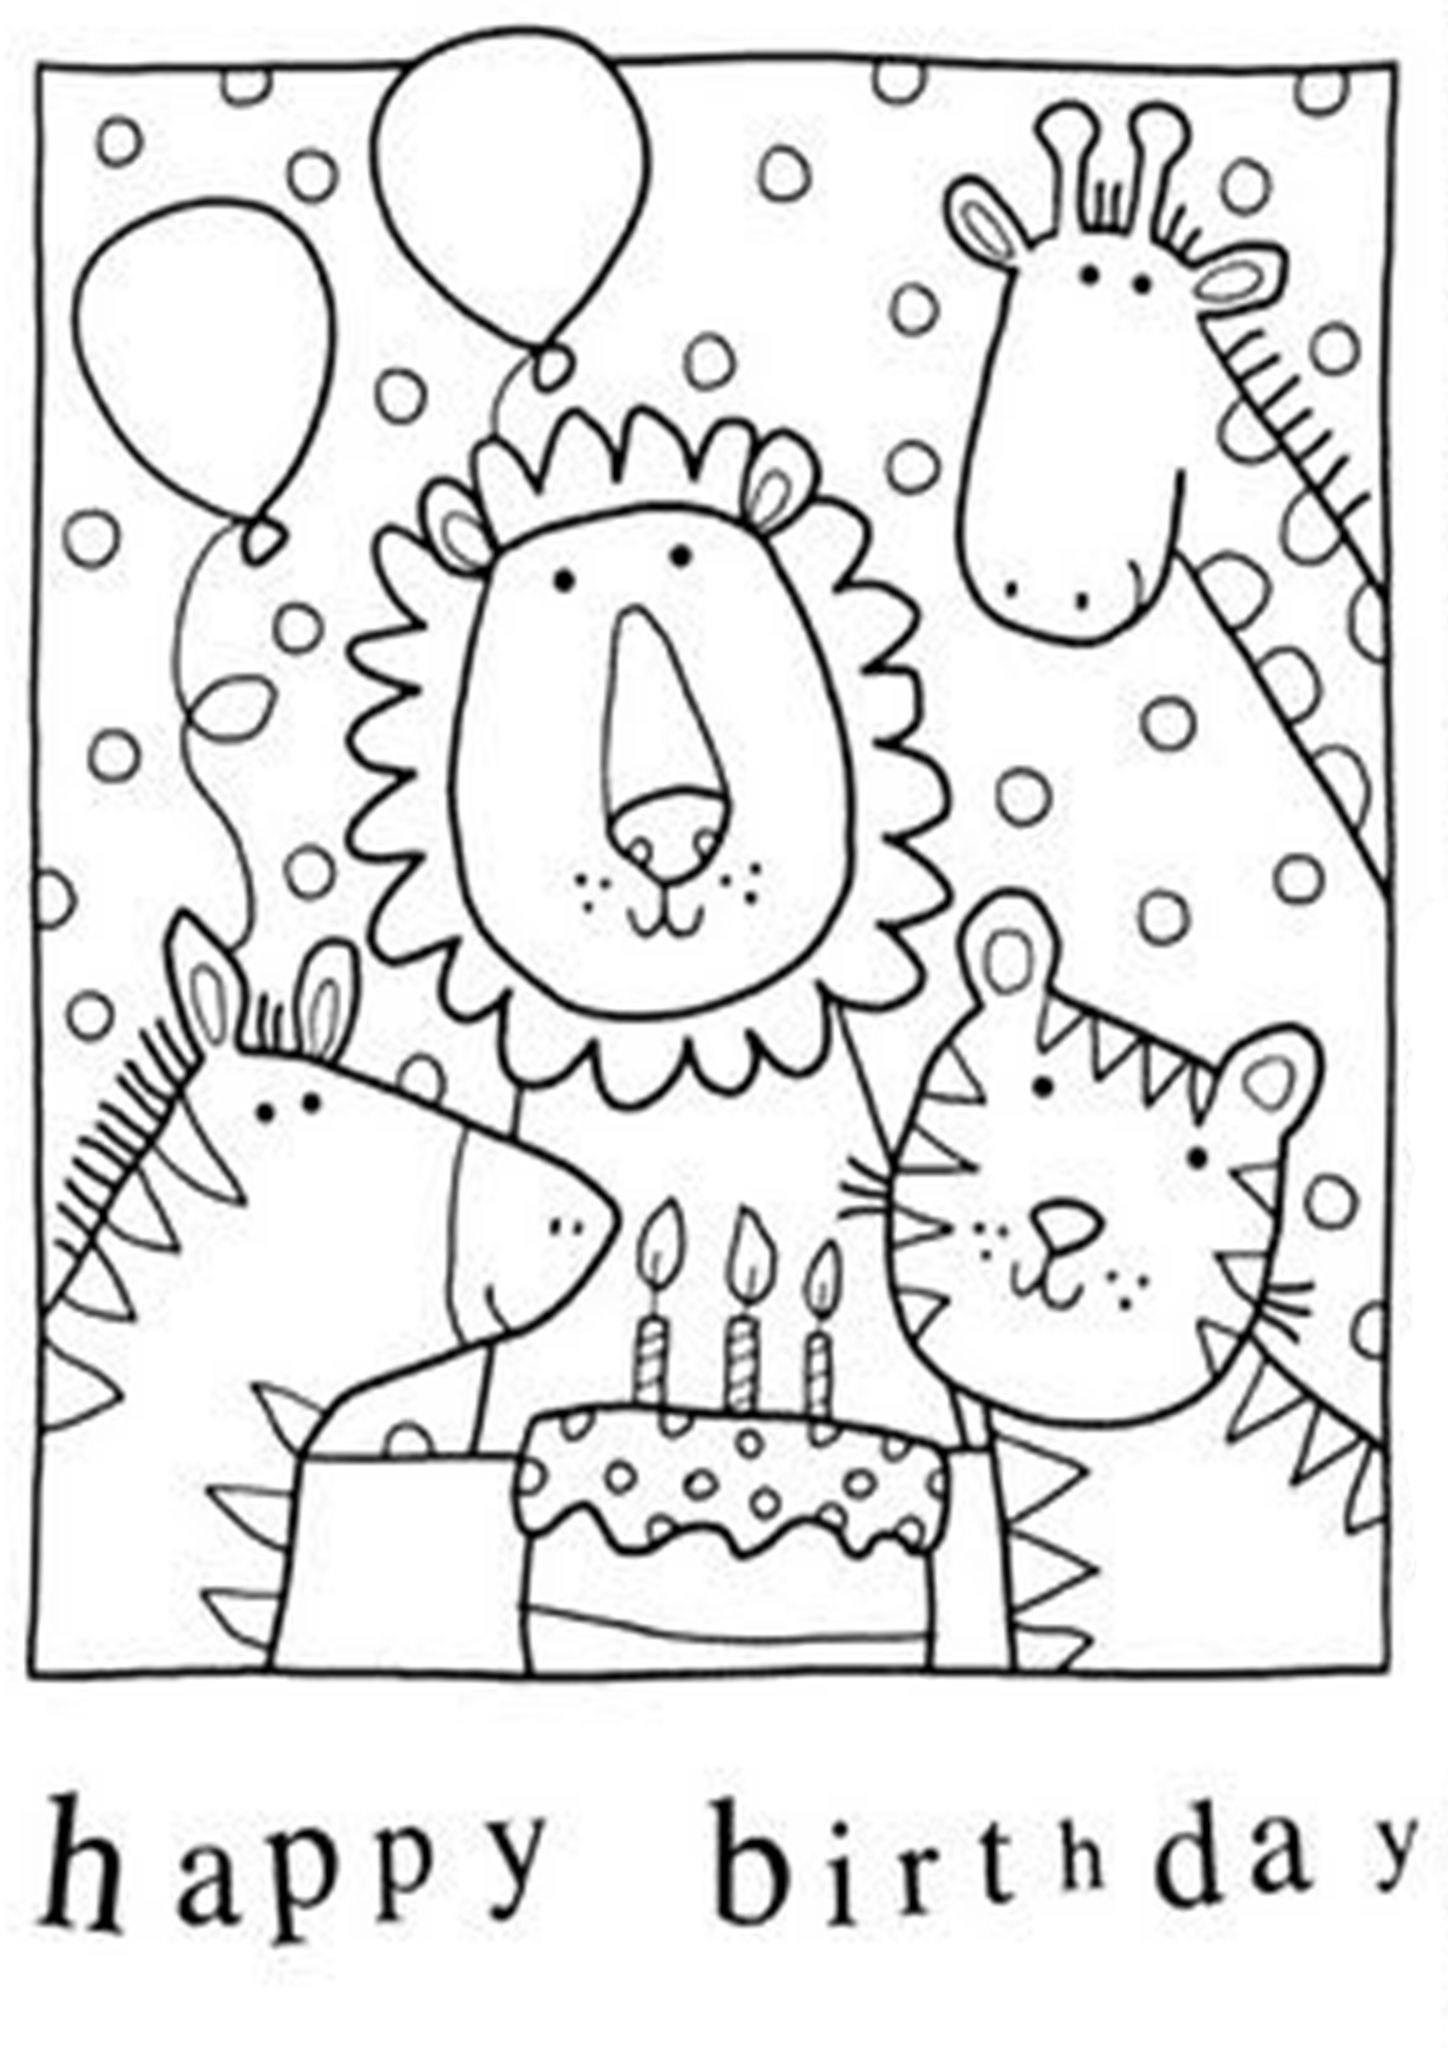 free easy to print happy birthday coloring printable card leaves and play blank dice coloring pages Birthday Card Coloring Page